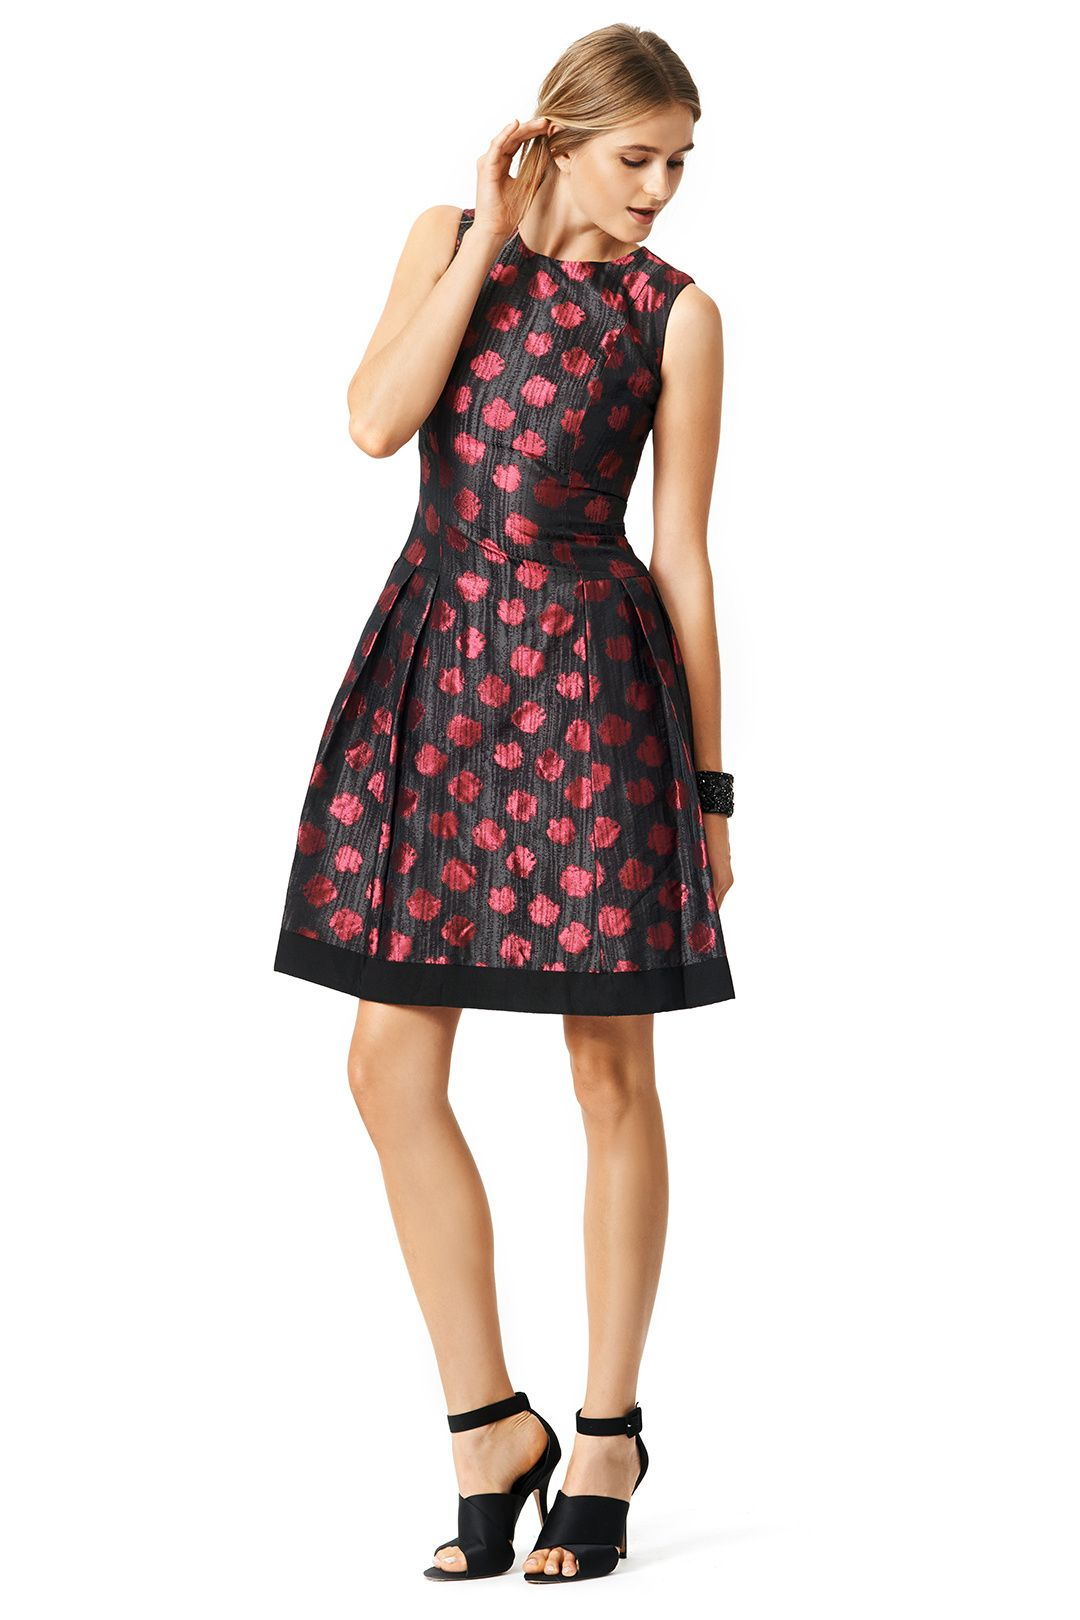 Carmen Marc Valvo Red Alert Dress Dresses, Short dresses